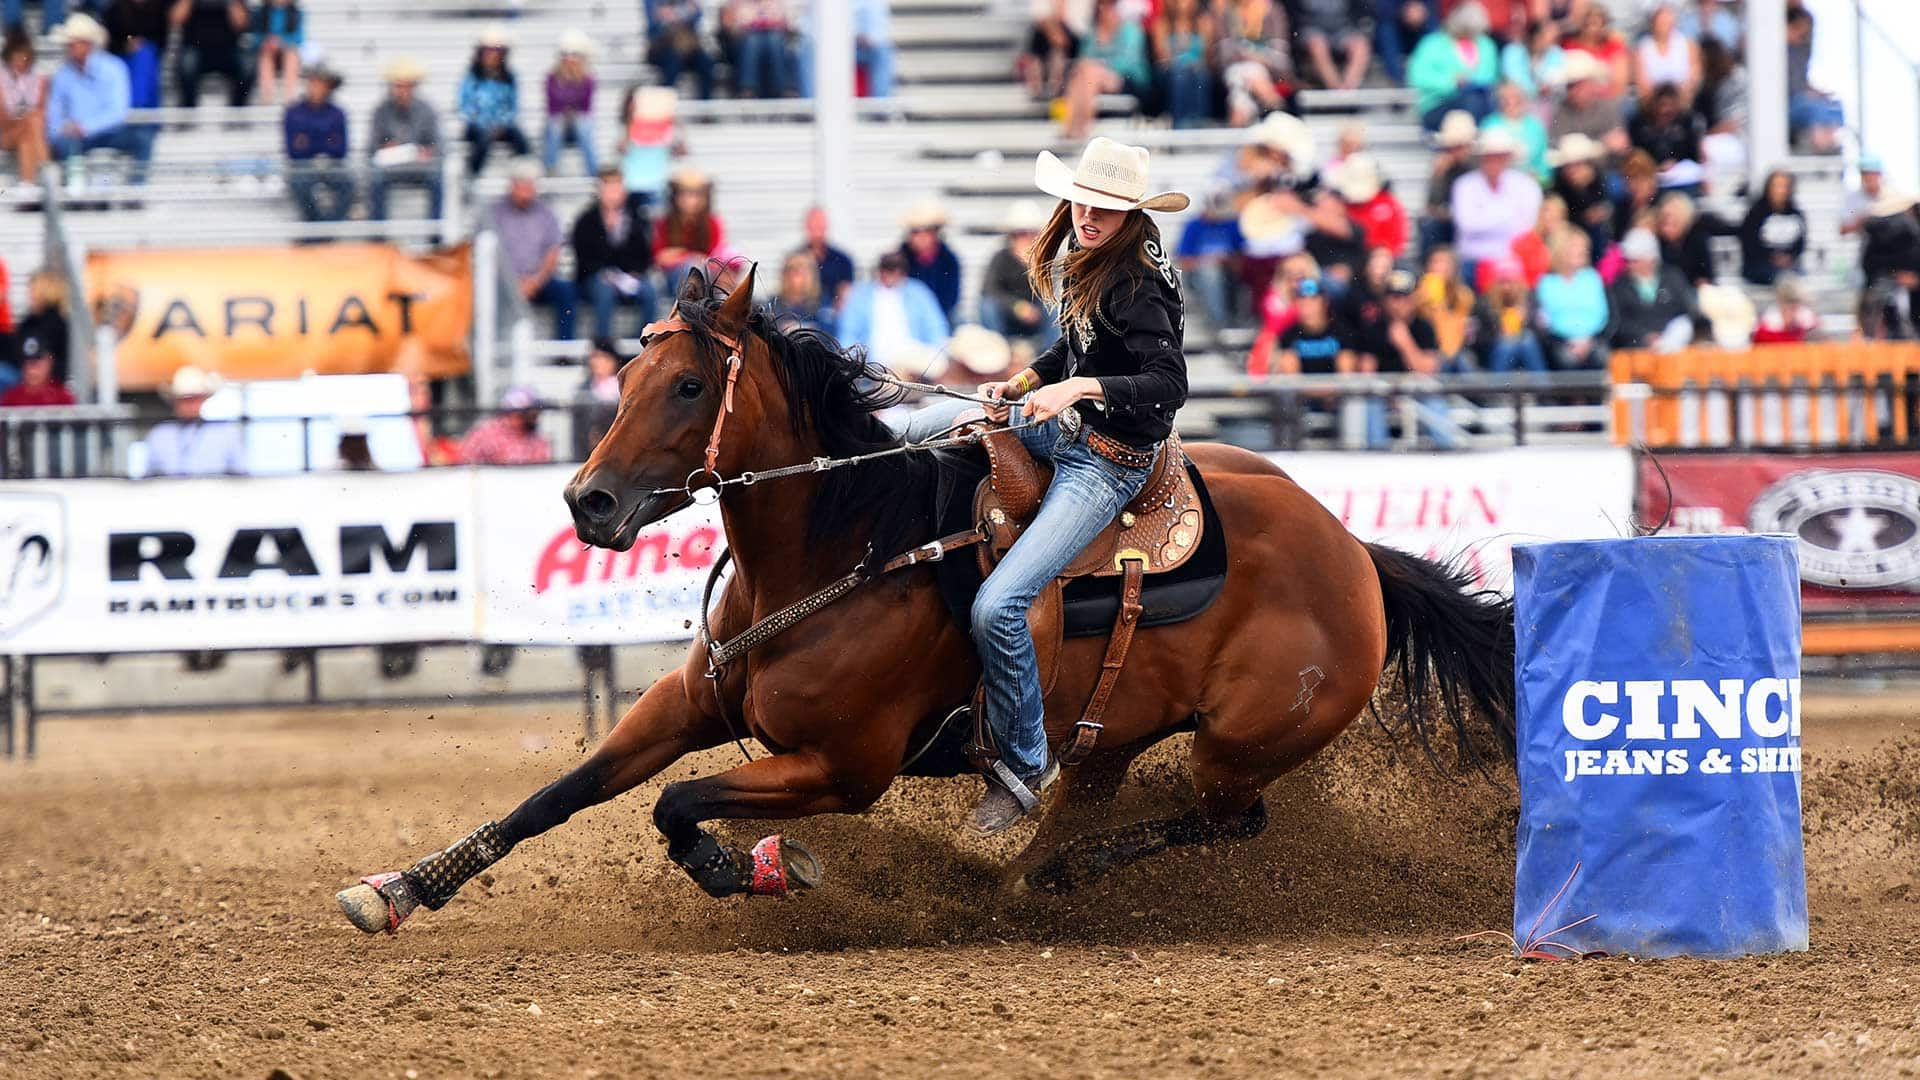 Canadian Teen Cowboys And Cowgirls Compete To Become Rodeo Champs